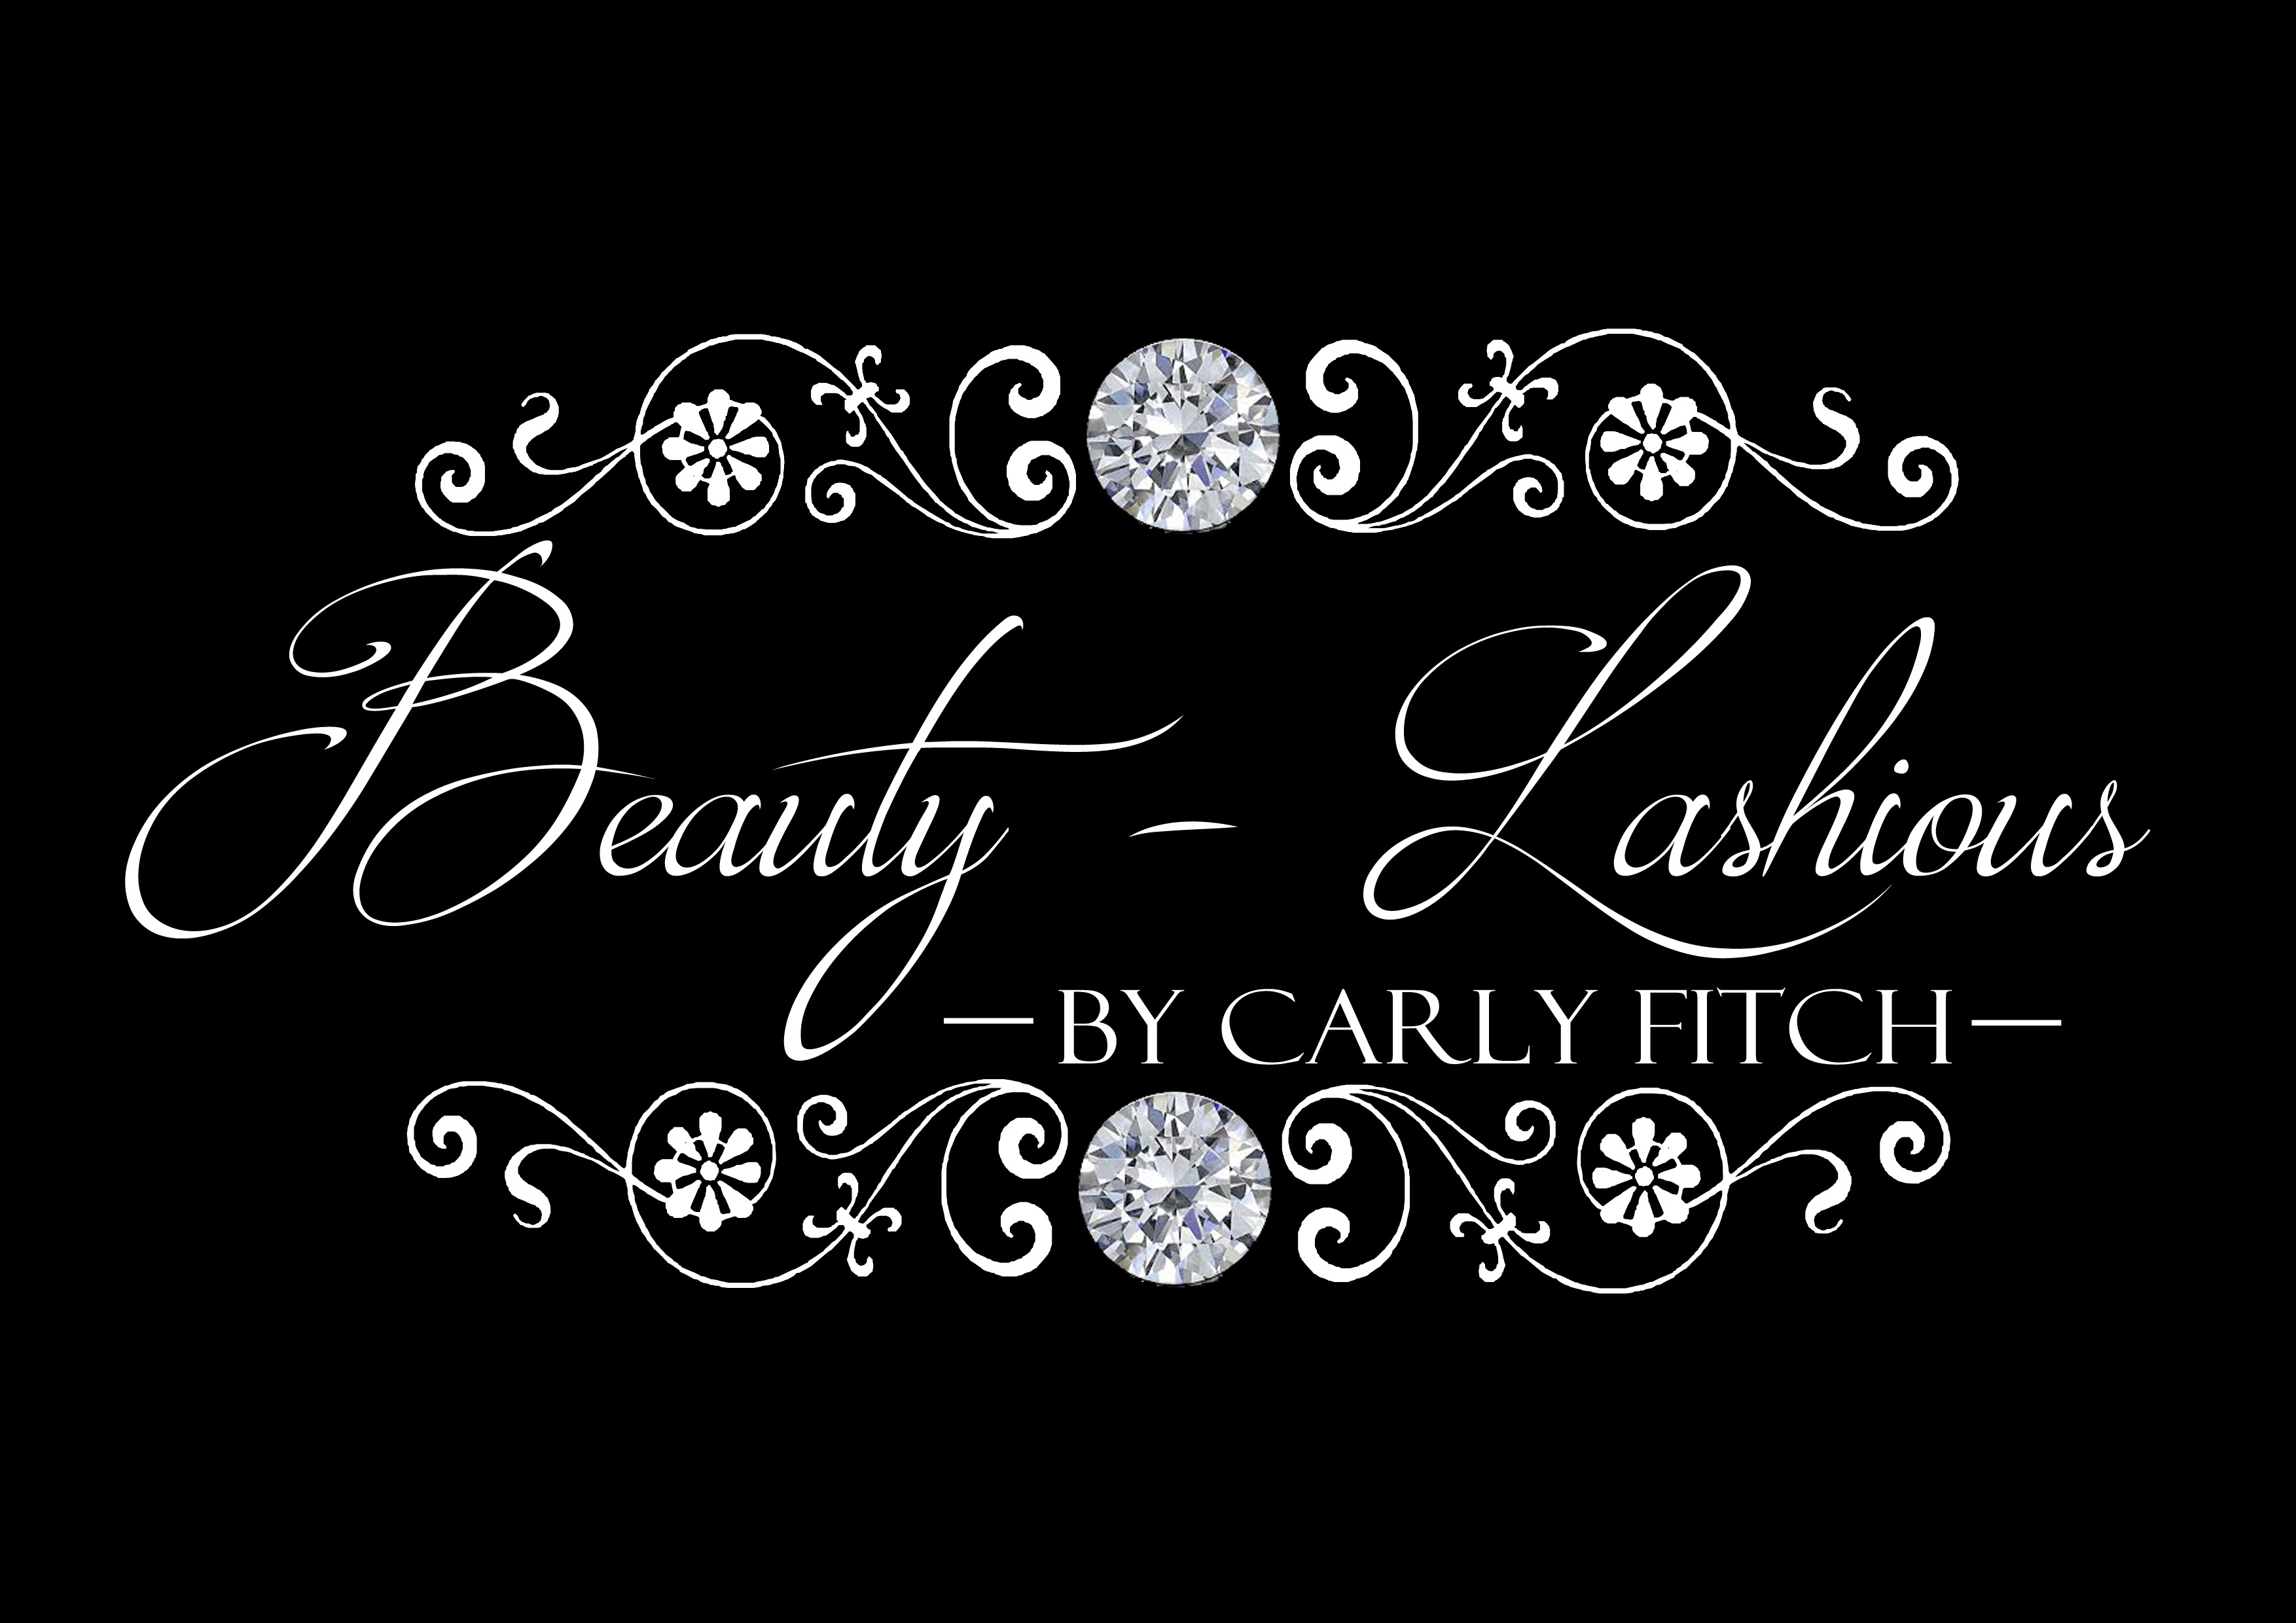 Beauty-Lashious by Carly Fitch